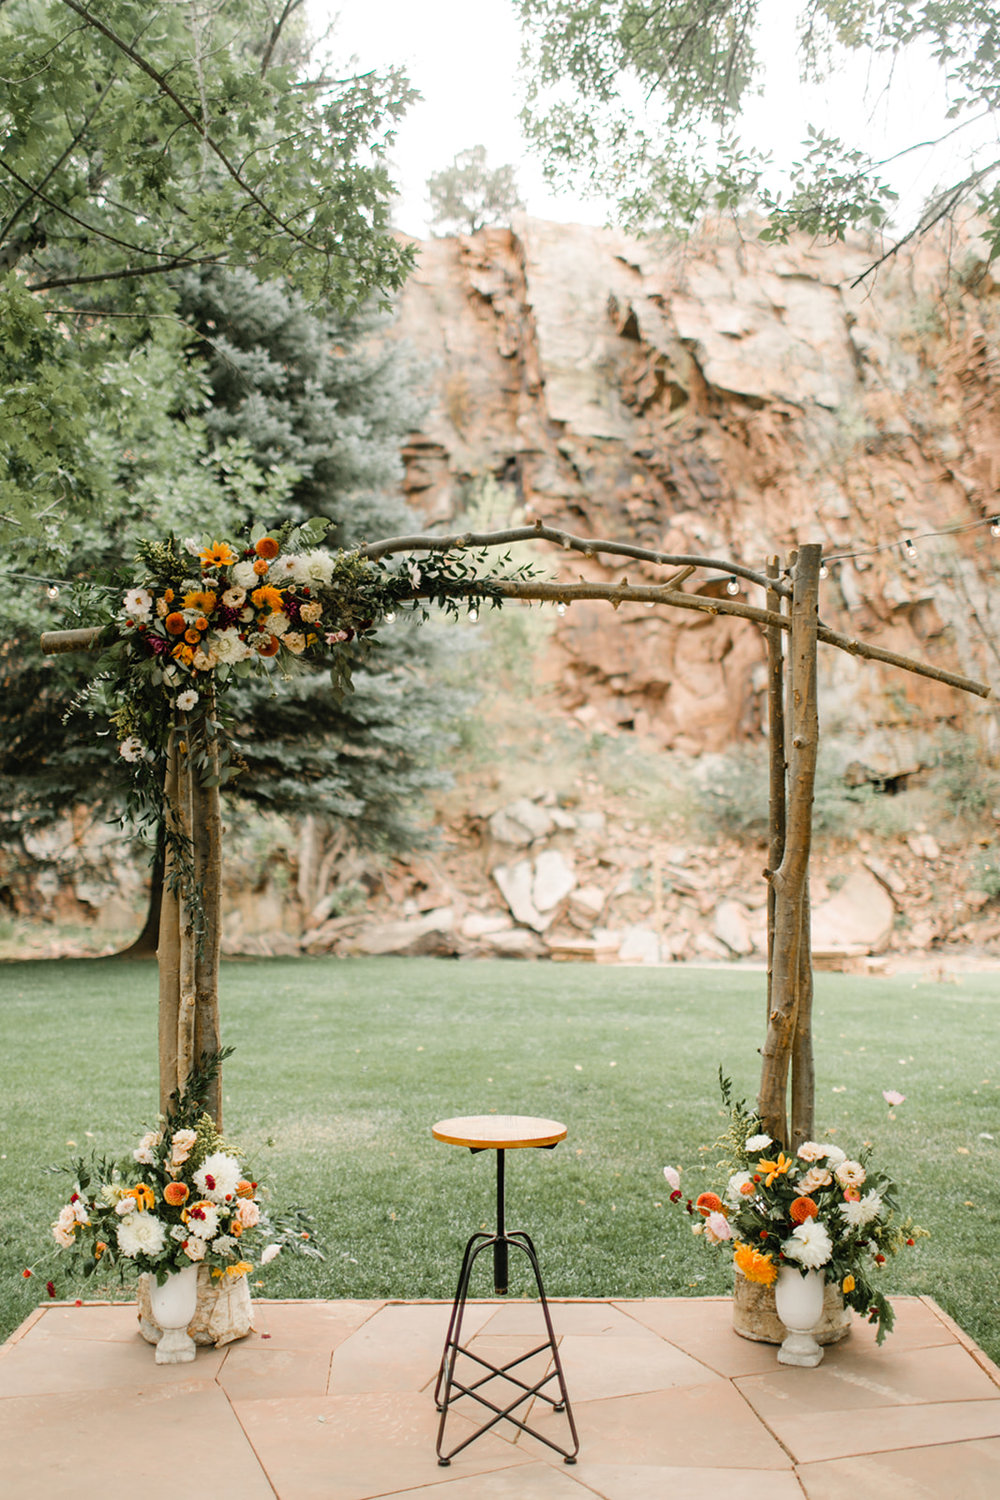 courtney_and_steve_riverbend_wedding_lyons_colorado-167.jpg